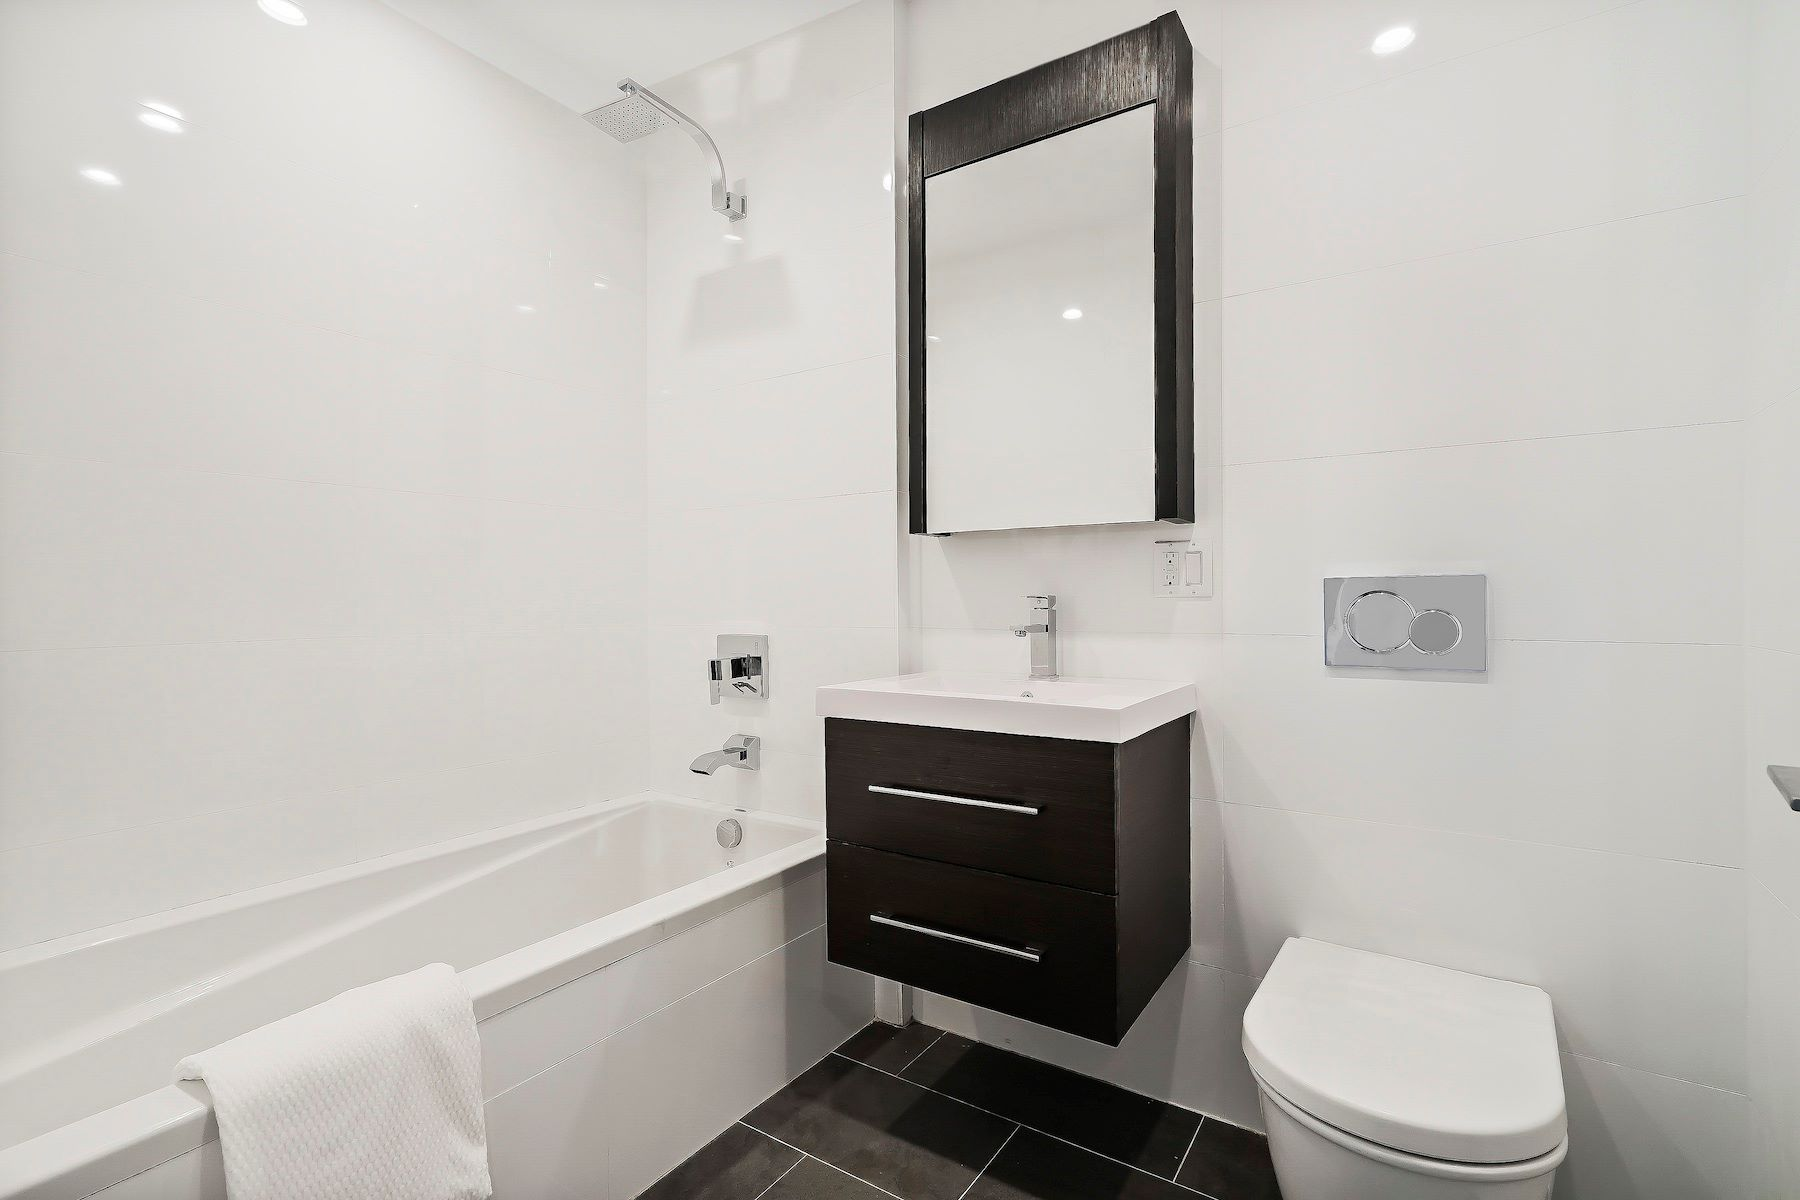 Additional photo for property listing at Stanton on Sixth 695 6th Avenue 2C Brooklyn, New York 11215 United States